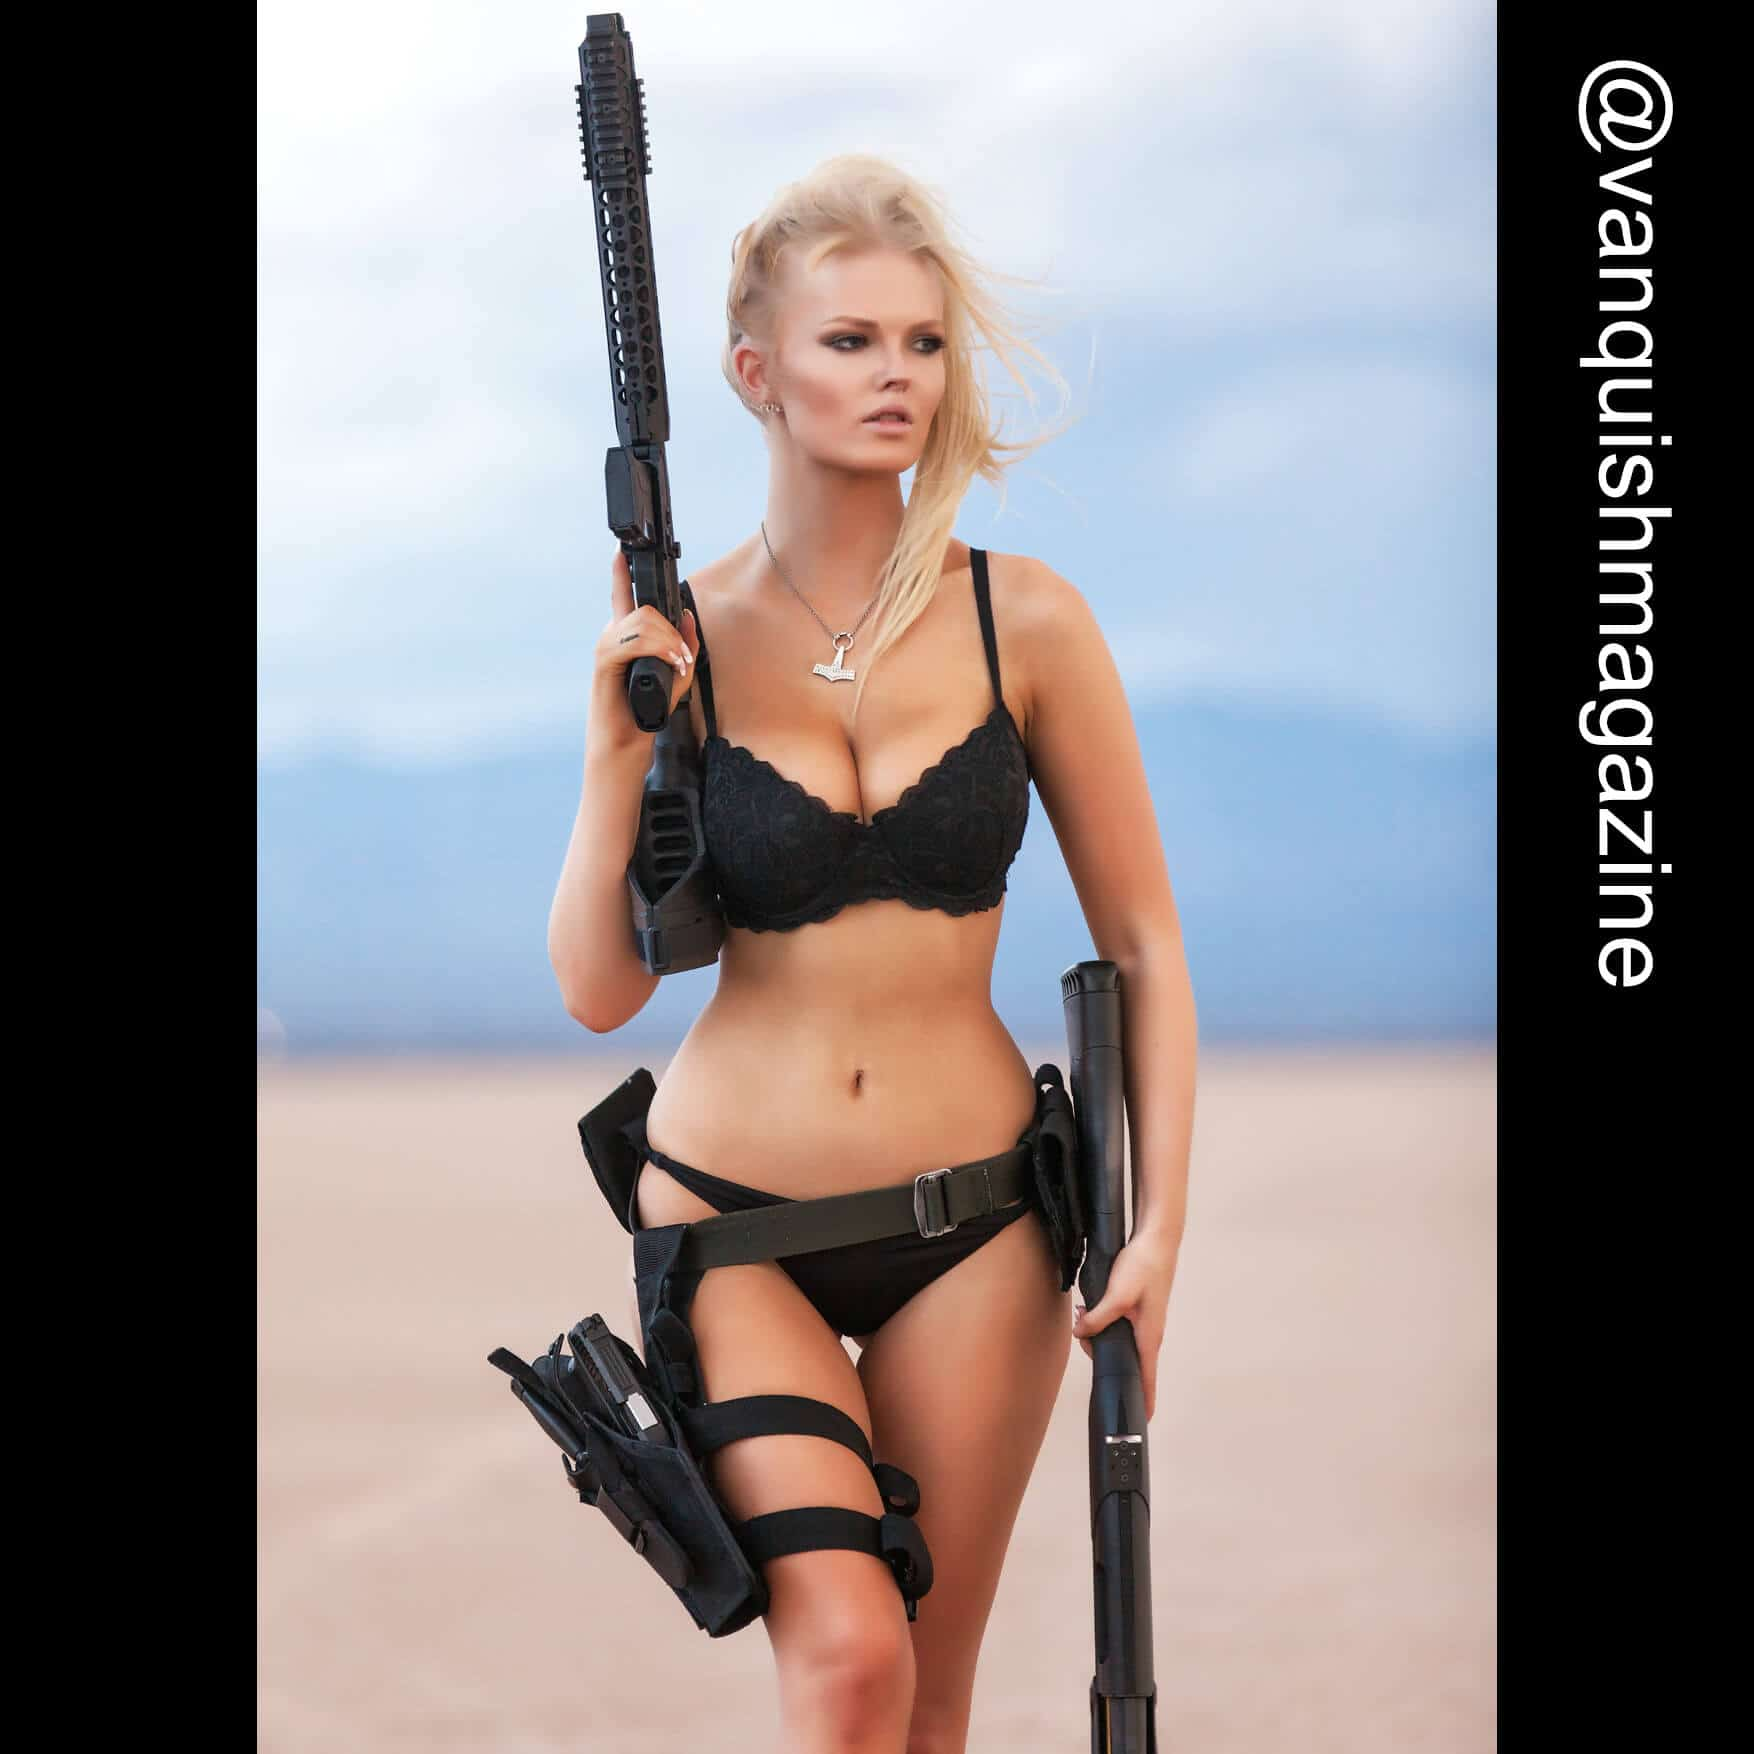 Girls with Guns | Euro Palace Casino Blog